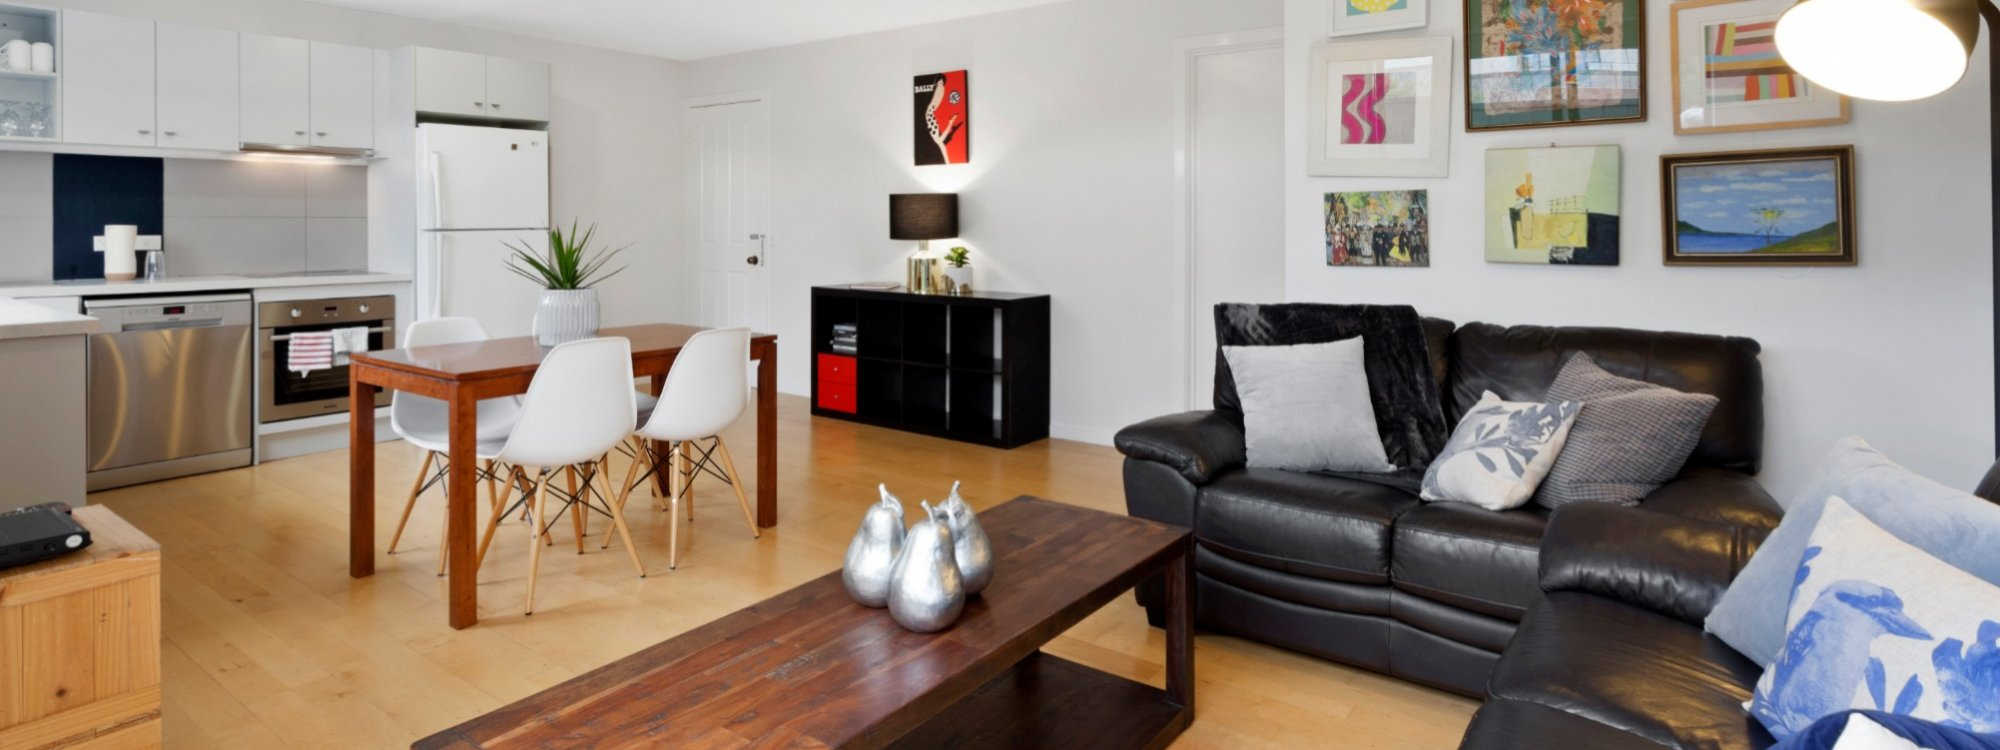 Manallack Apartments Boyd - Melbourne - Living Dining Area 2